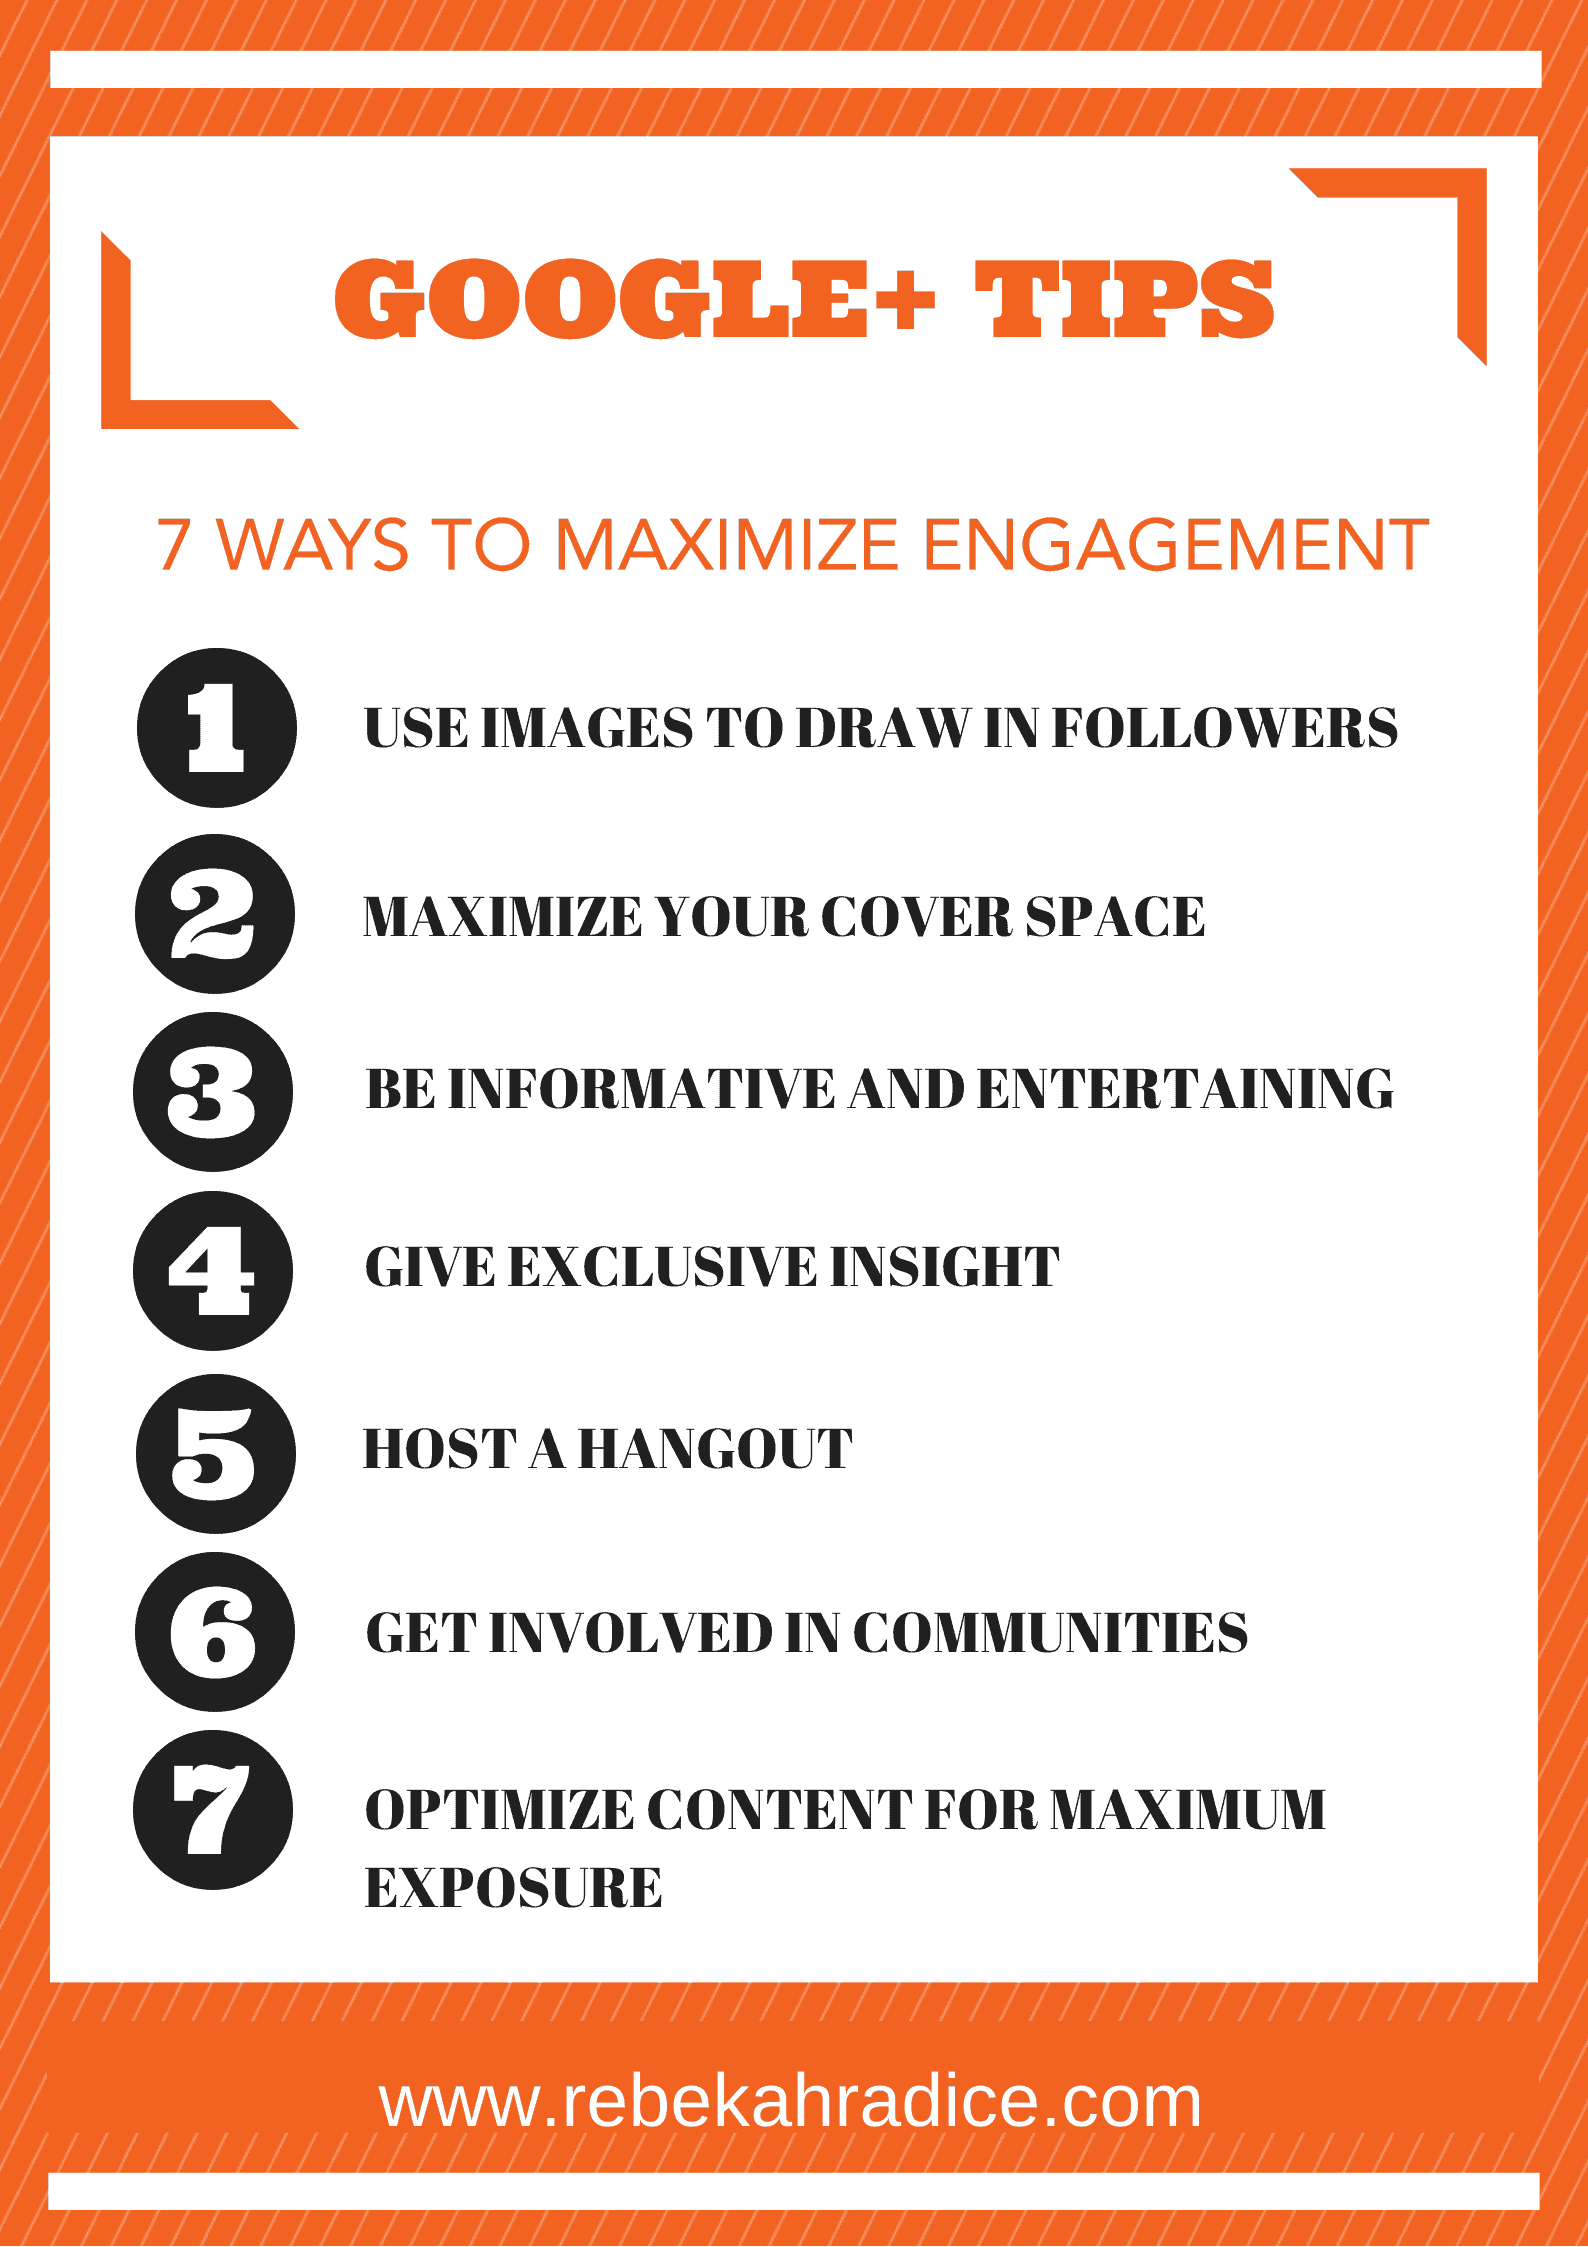 7 Google+ Tips to Create Maximum Engagement